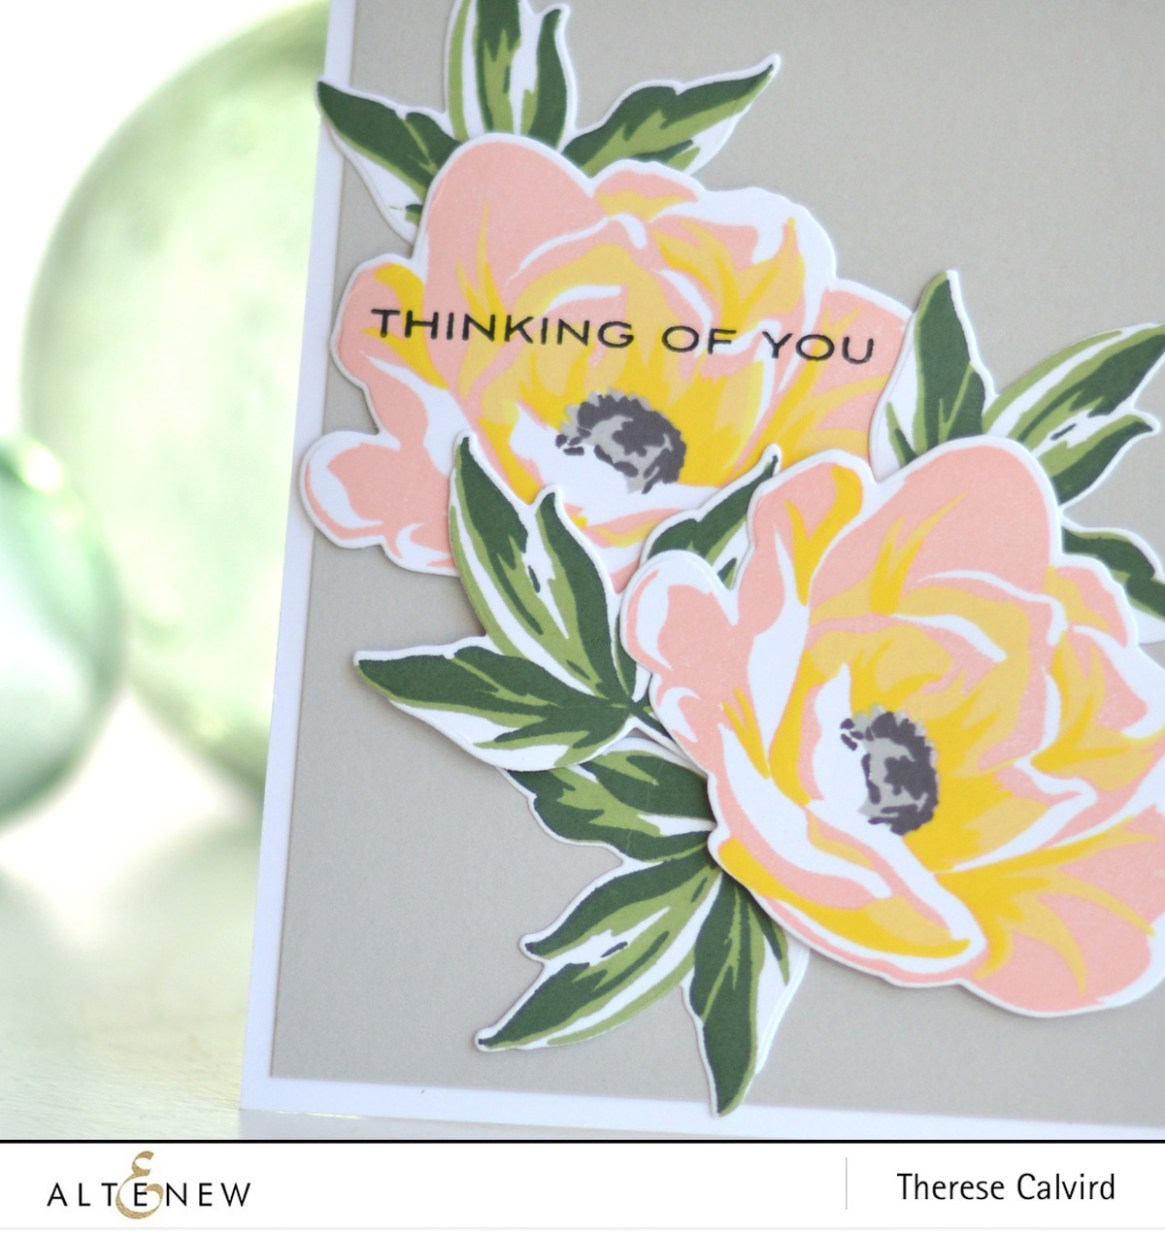 Altenew - Hope - Thinking of You - Therese Calvird (card video) 1 copy